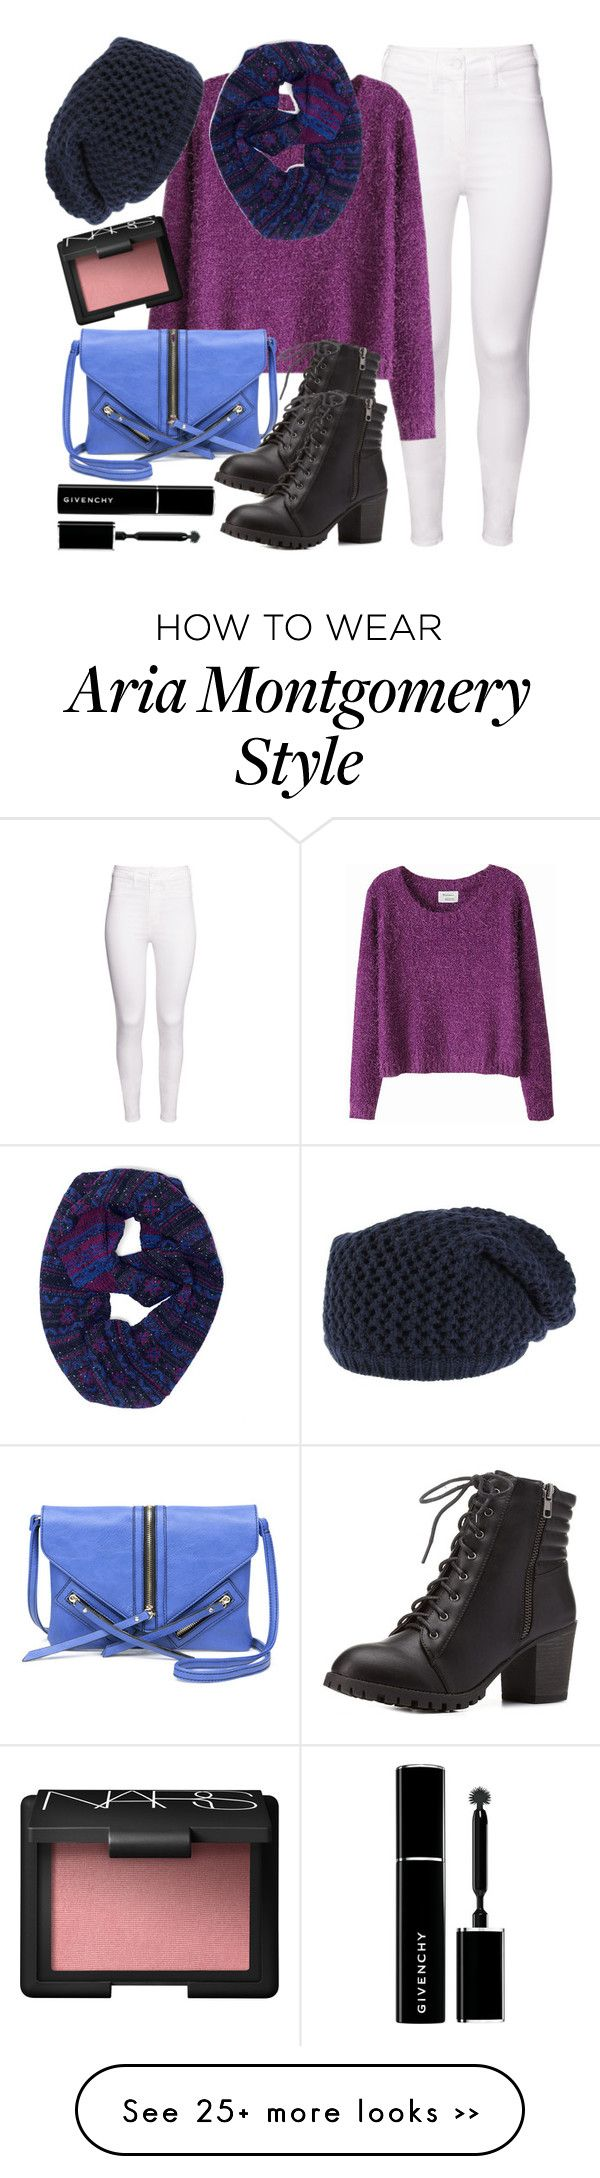 """Aria Montgomery inspired outfit with a navy beanie"" by liarsstyle on Polyvore"